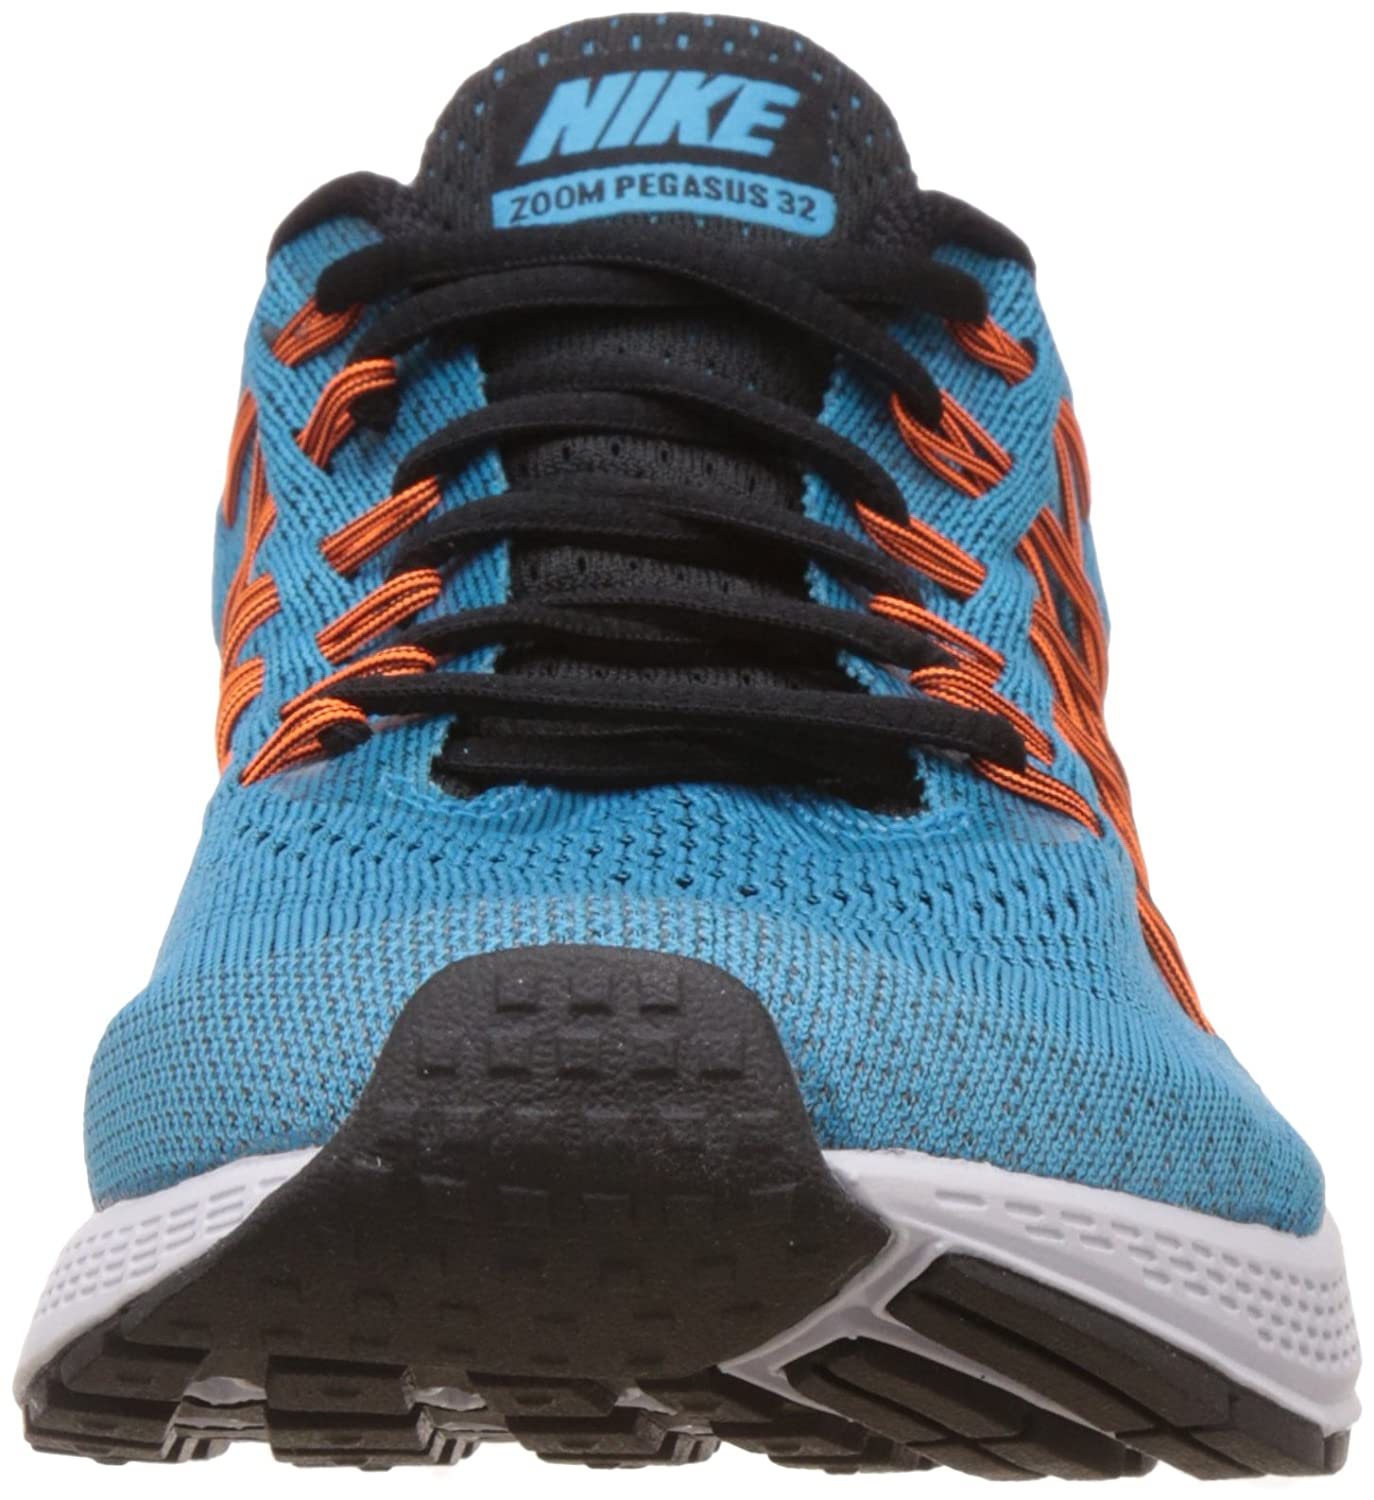 Zoom Air Pegasus 32 Recensione Cella Uk Nike pze5x